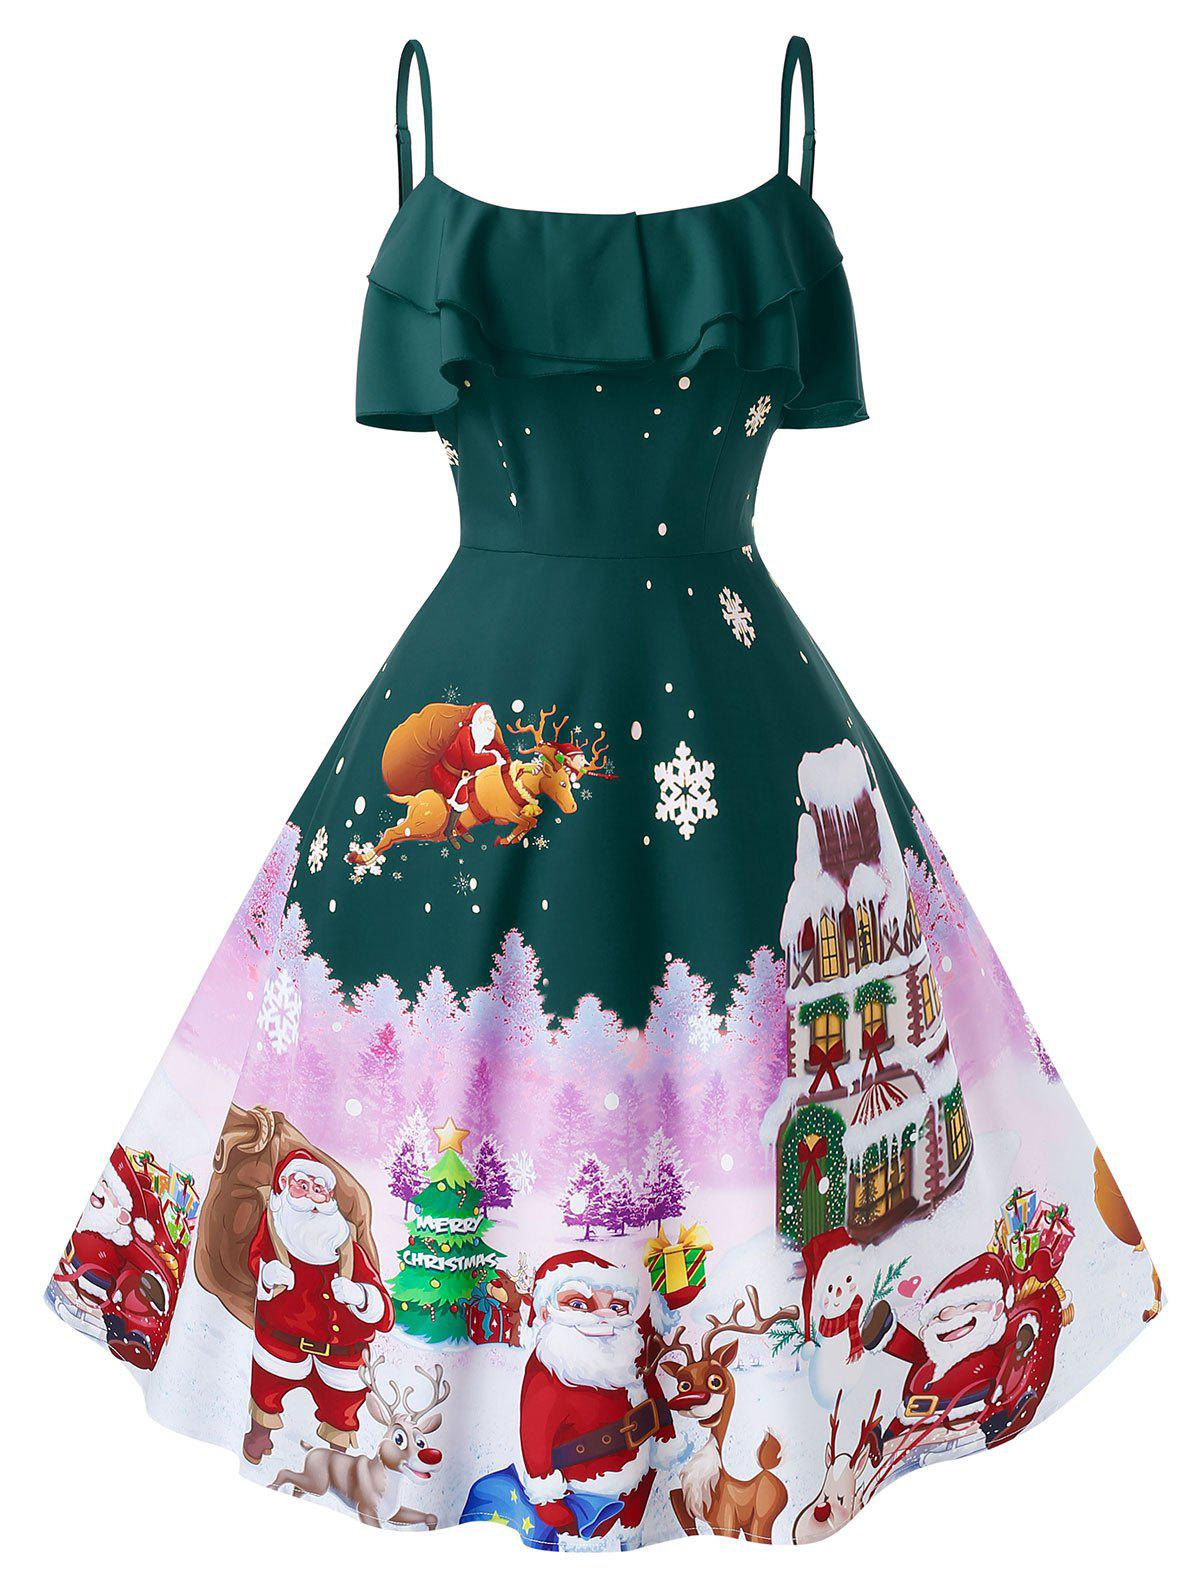 Plus Size Christmas Vintage Printed Pin Up Dress - DARK FOREST GREEN 3X